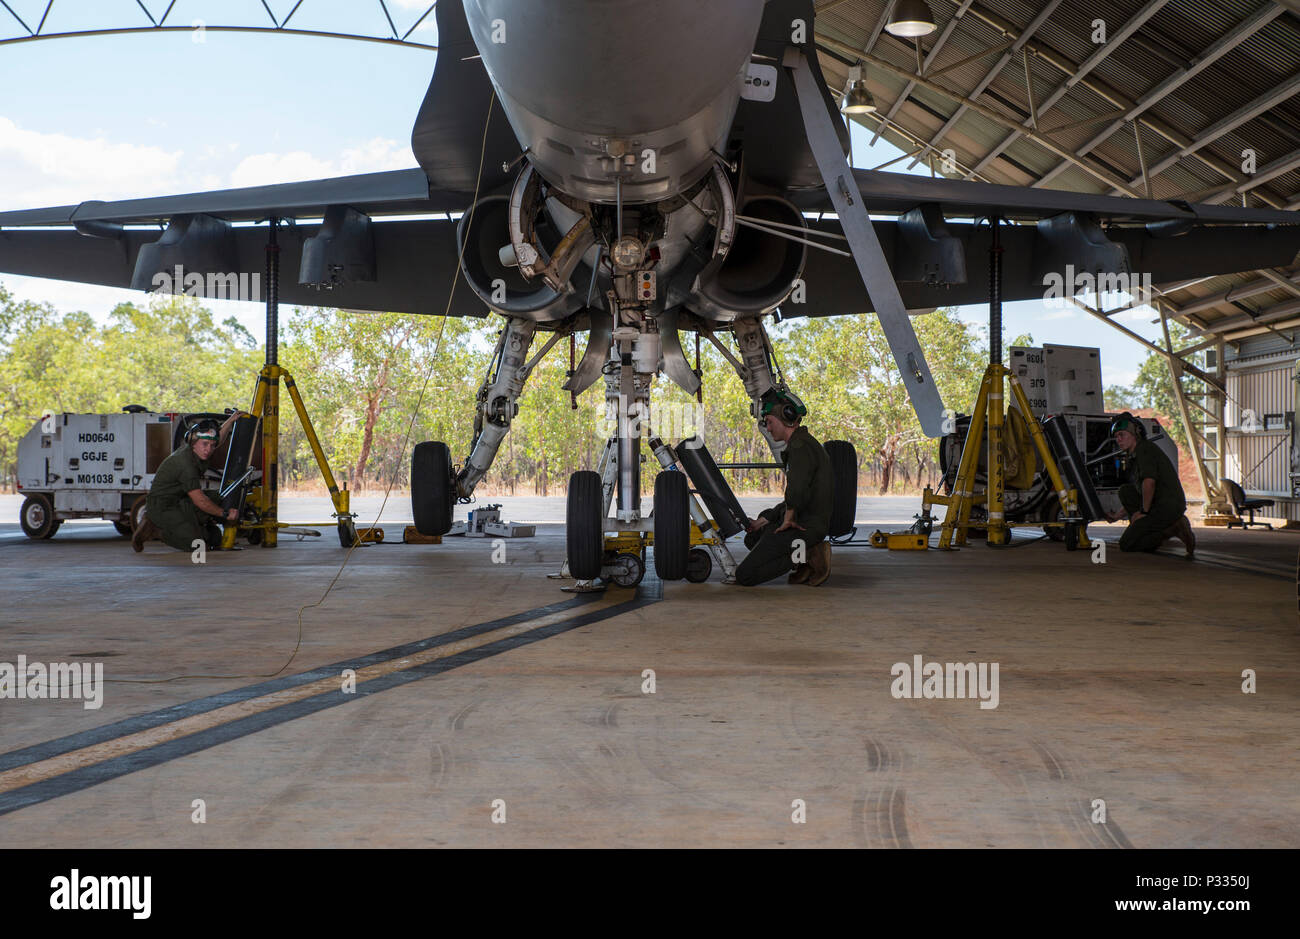 U.S. Marines assigned to Marine Fighter Attack Squadron (VMFA) 122 prepare to lower an F/A-18C Hornet during Southern Frontier at Royal Australian Air Force Base Tindal, Australia, Aug. 31, 2016. In preparation for departure from Australia, the squadron performs maintenance on all aircraft to ensure they are ready to make the long flight home. Southern Frontier is a three week unit level training that helps pilots gain experience and qualifications in low-altitude tactics, close air support, and air ground, high explosive ordnance delivery. (U.S. Marine Corps photo by Cpl. Nicole Zurbrugg) - Stock Image